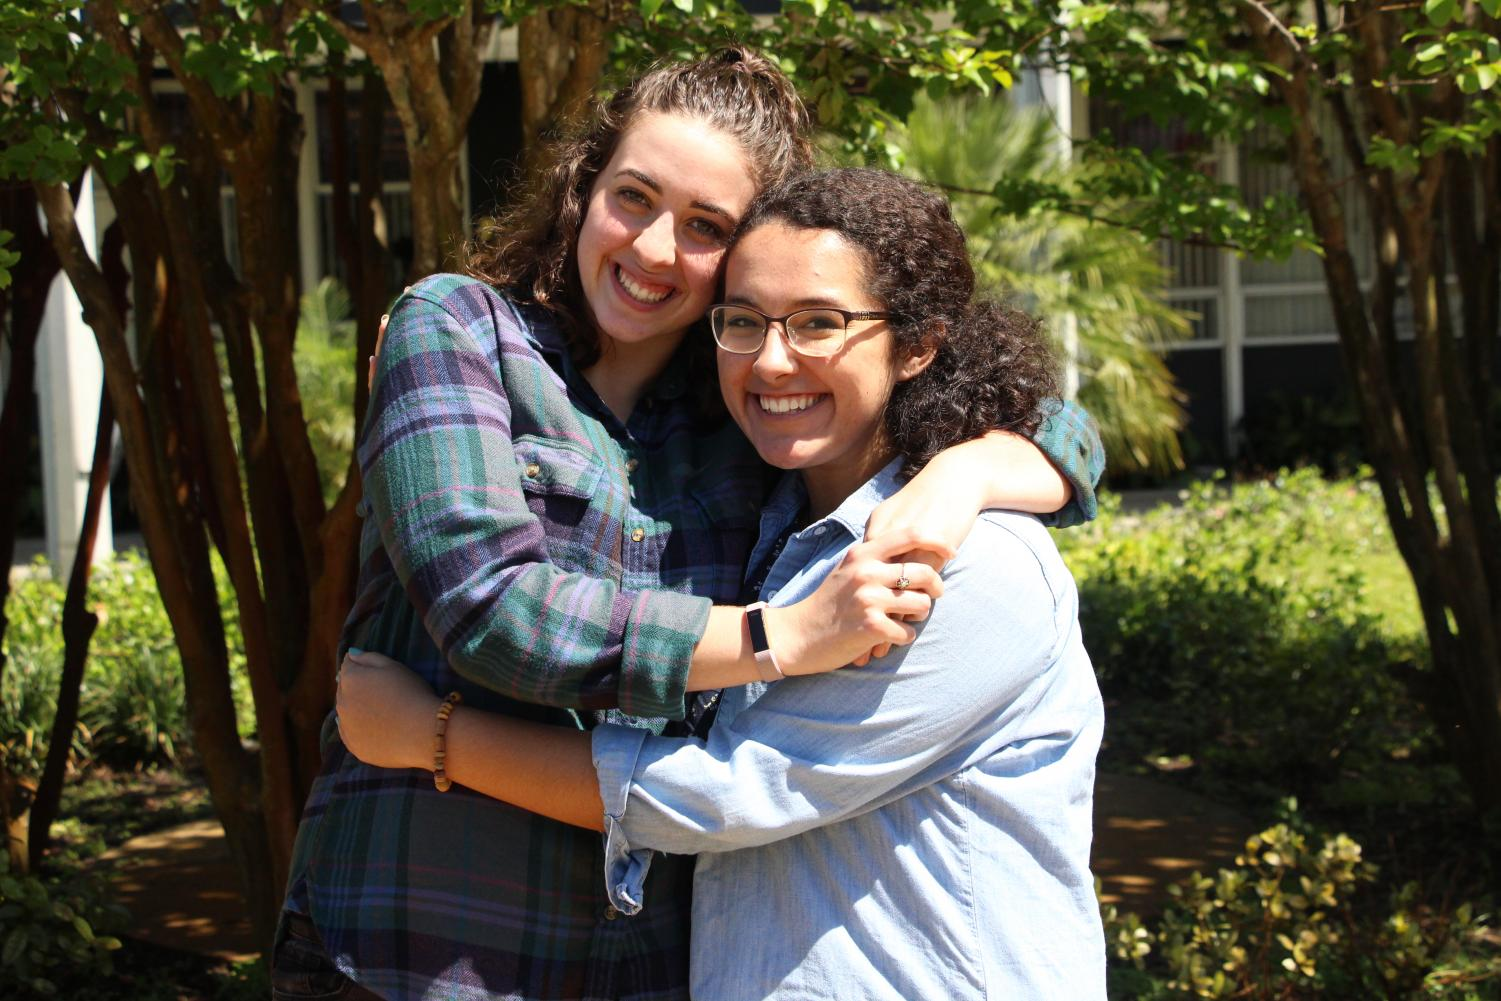 Anna Thomas ('18) (left) and Lillian Martin ('18) (right), the two nominees for Writer of the Year, embrace each other for a photo.